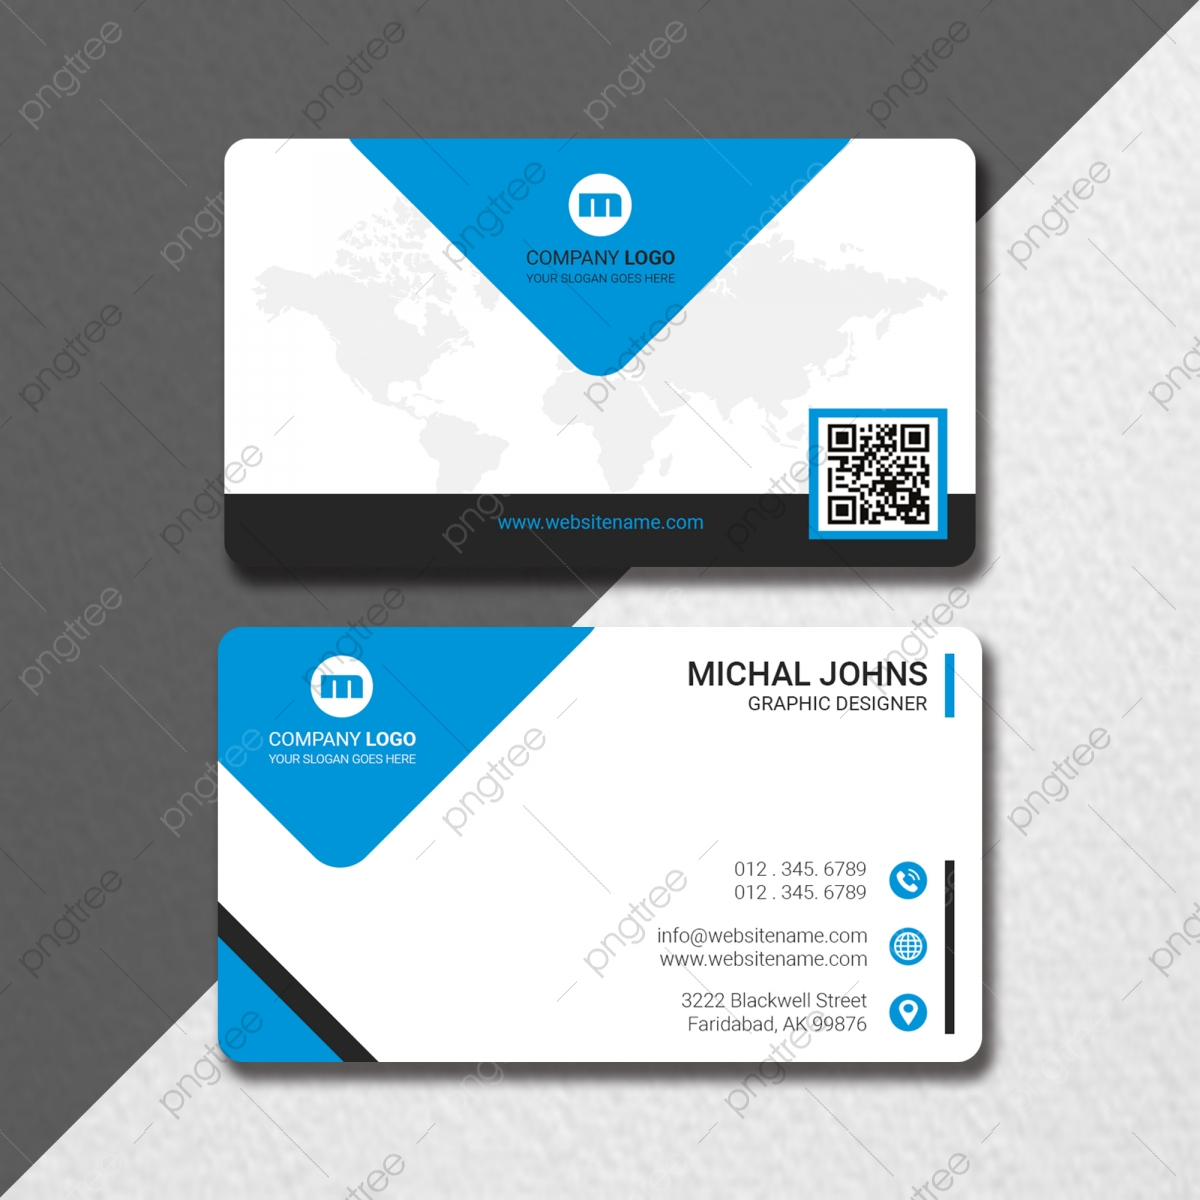 Modern Business Card With Map Qr Code Template Download on Pngtree For Qr Code Business Card Template